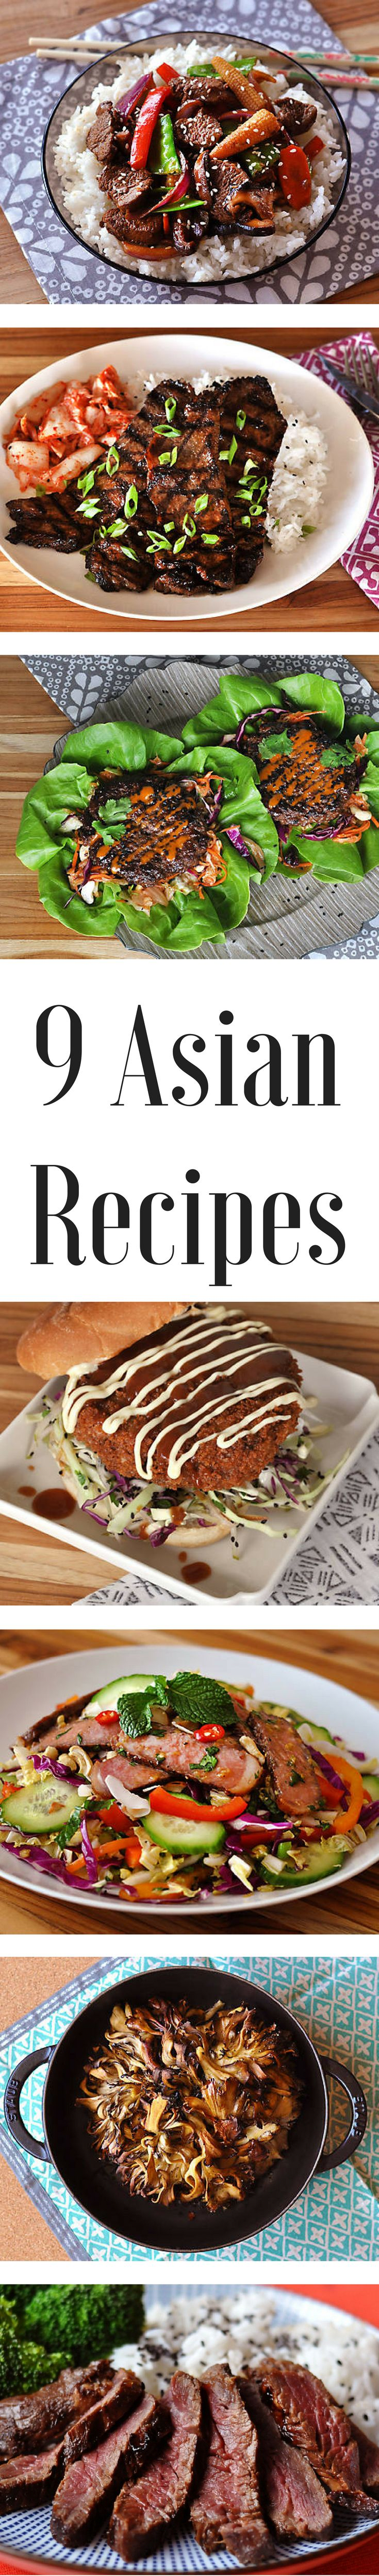 Sometimes you just crave the heat of Thai food, the crunch of Japanese katsu, or the savory flavors of Korean barbecue. We know how it feels! The umami-rich dishes often beckon us to our favorite Asian restaurants, or to call for take out. But we have nine recipes that will satisfy your hankering for ethnic cuisine – and they are easy to make at home.